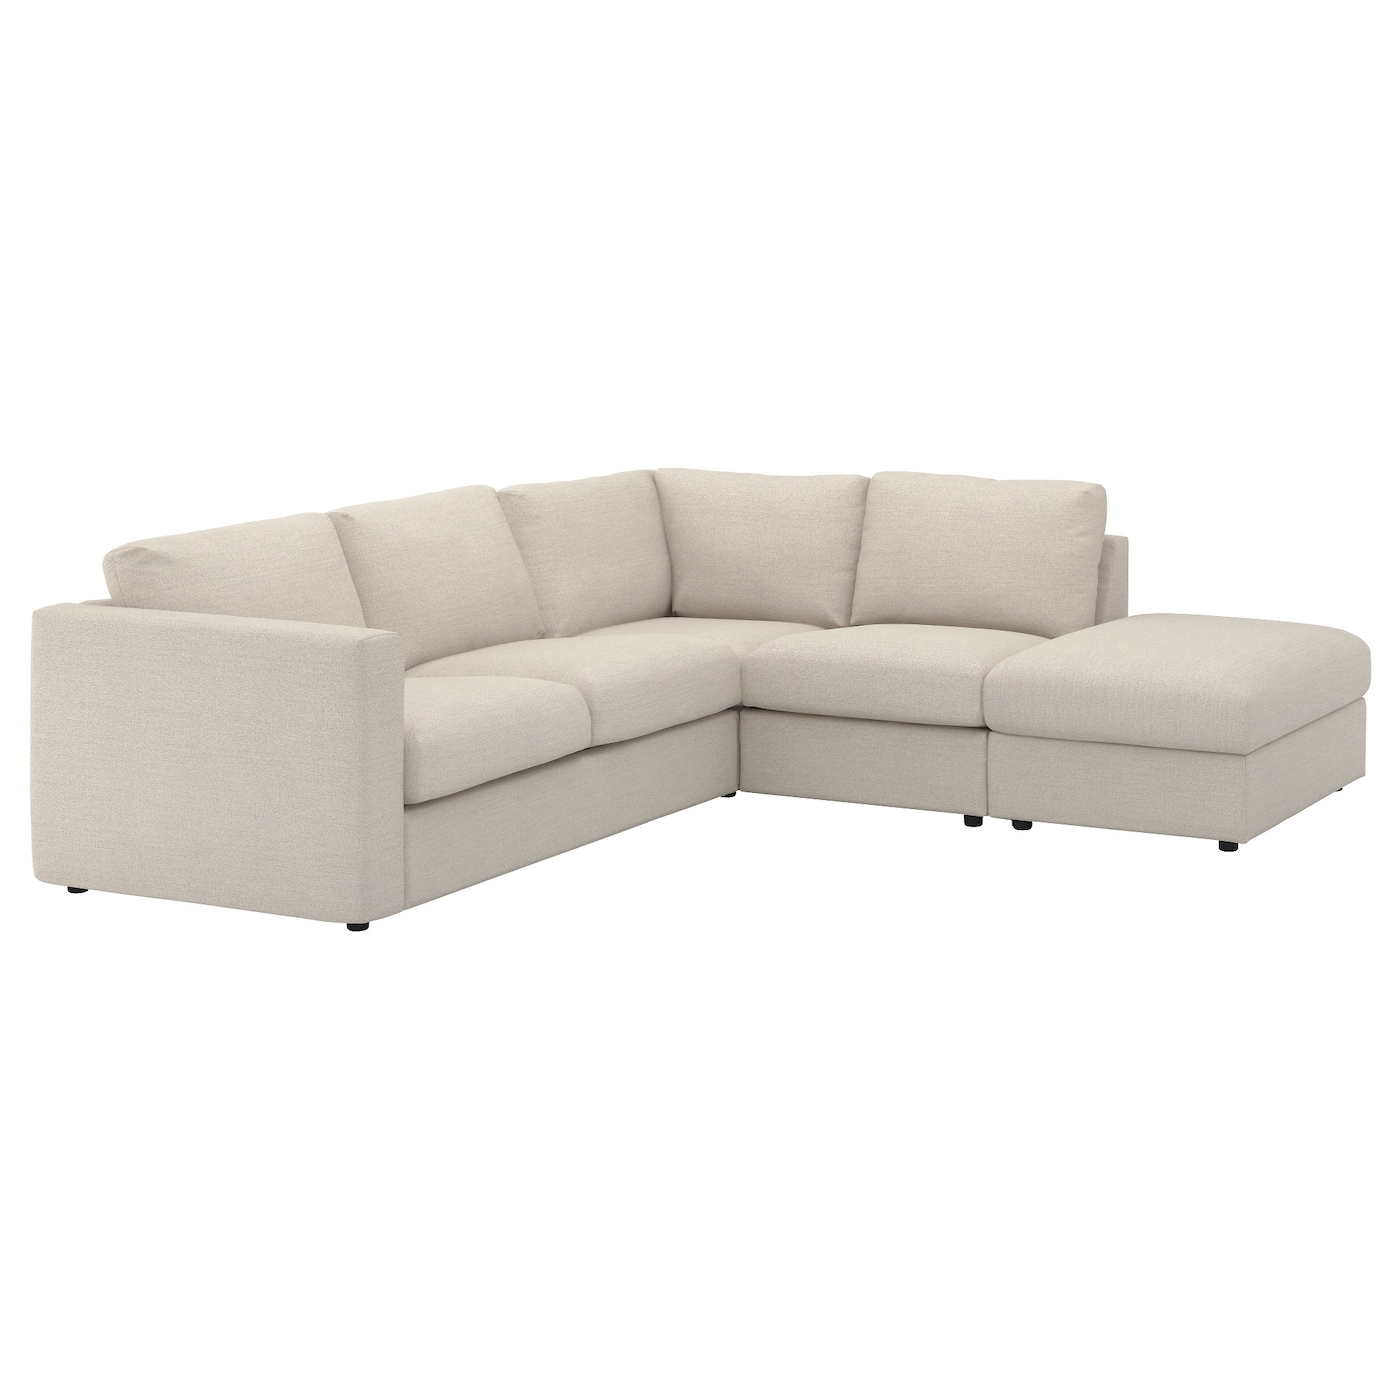 Vimle Corner Sofa 4 Seat With Open End Gunnared Beige Ikea